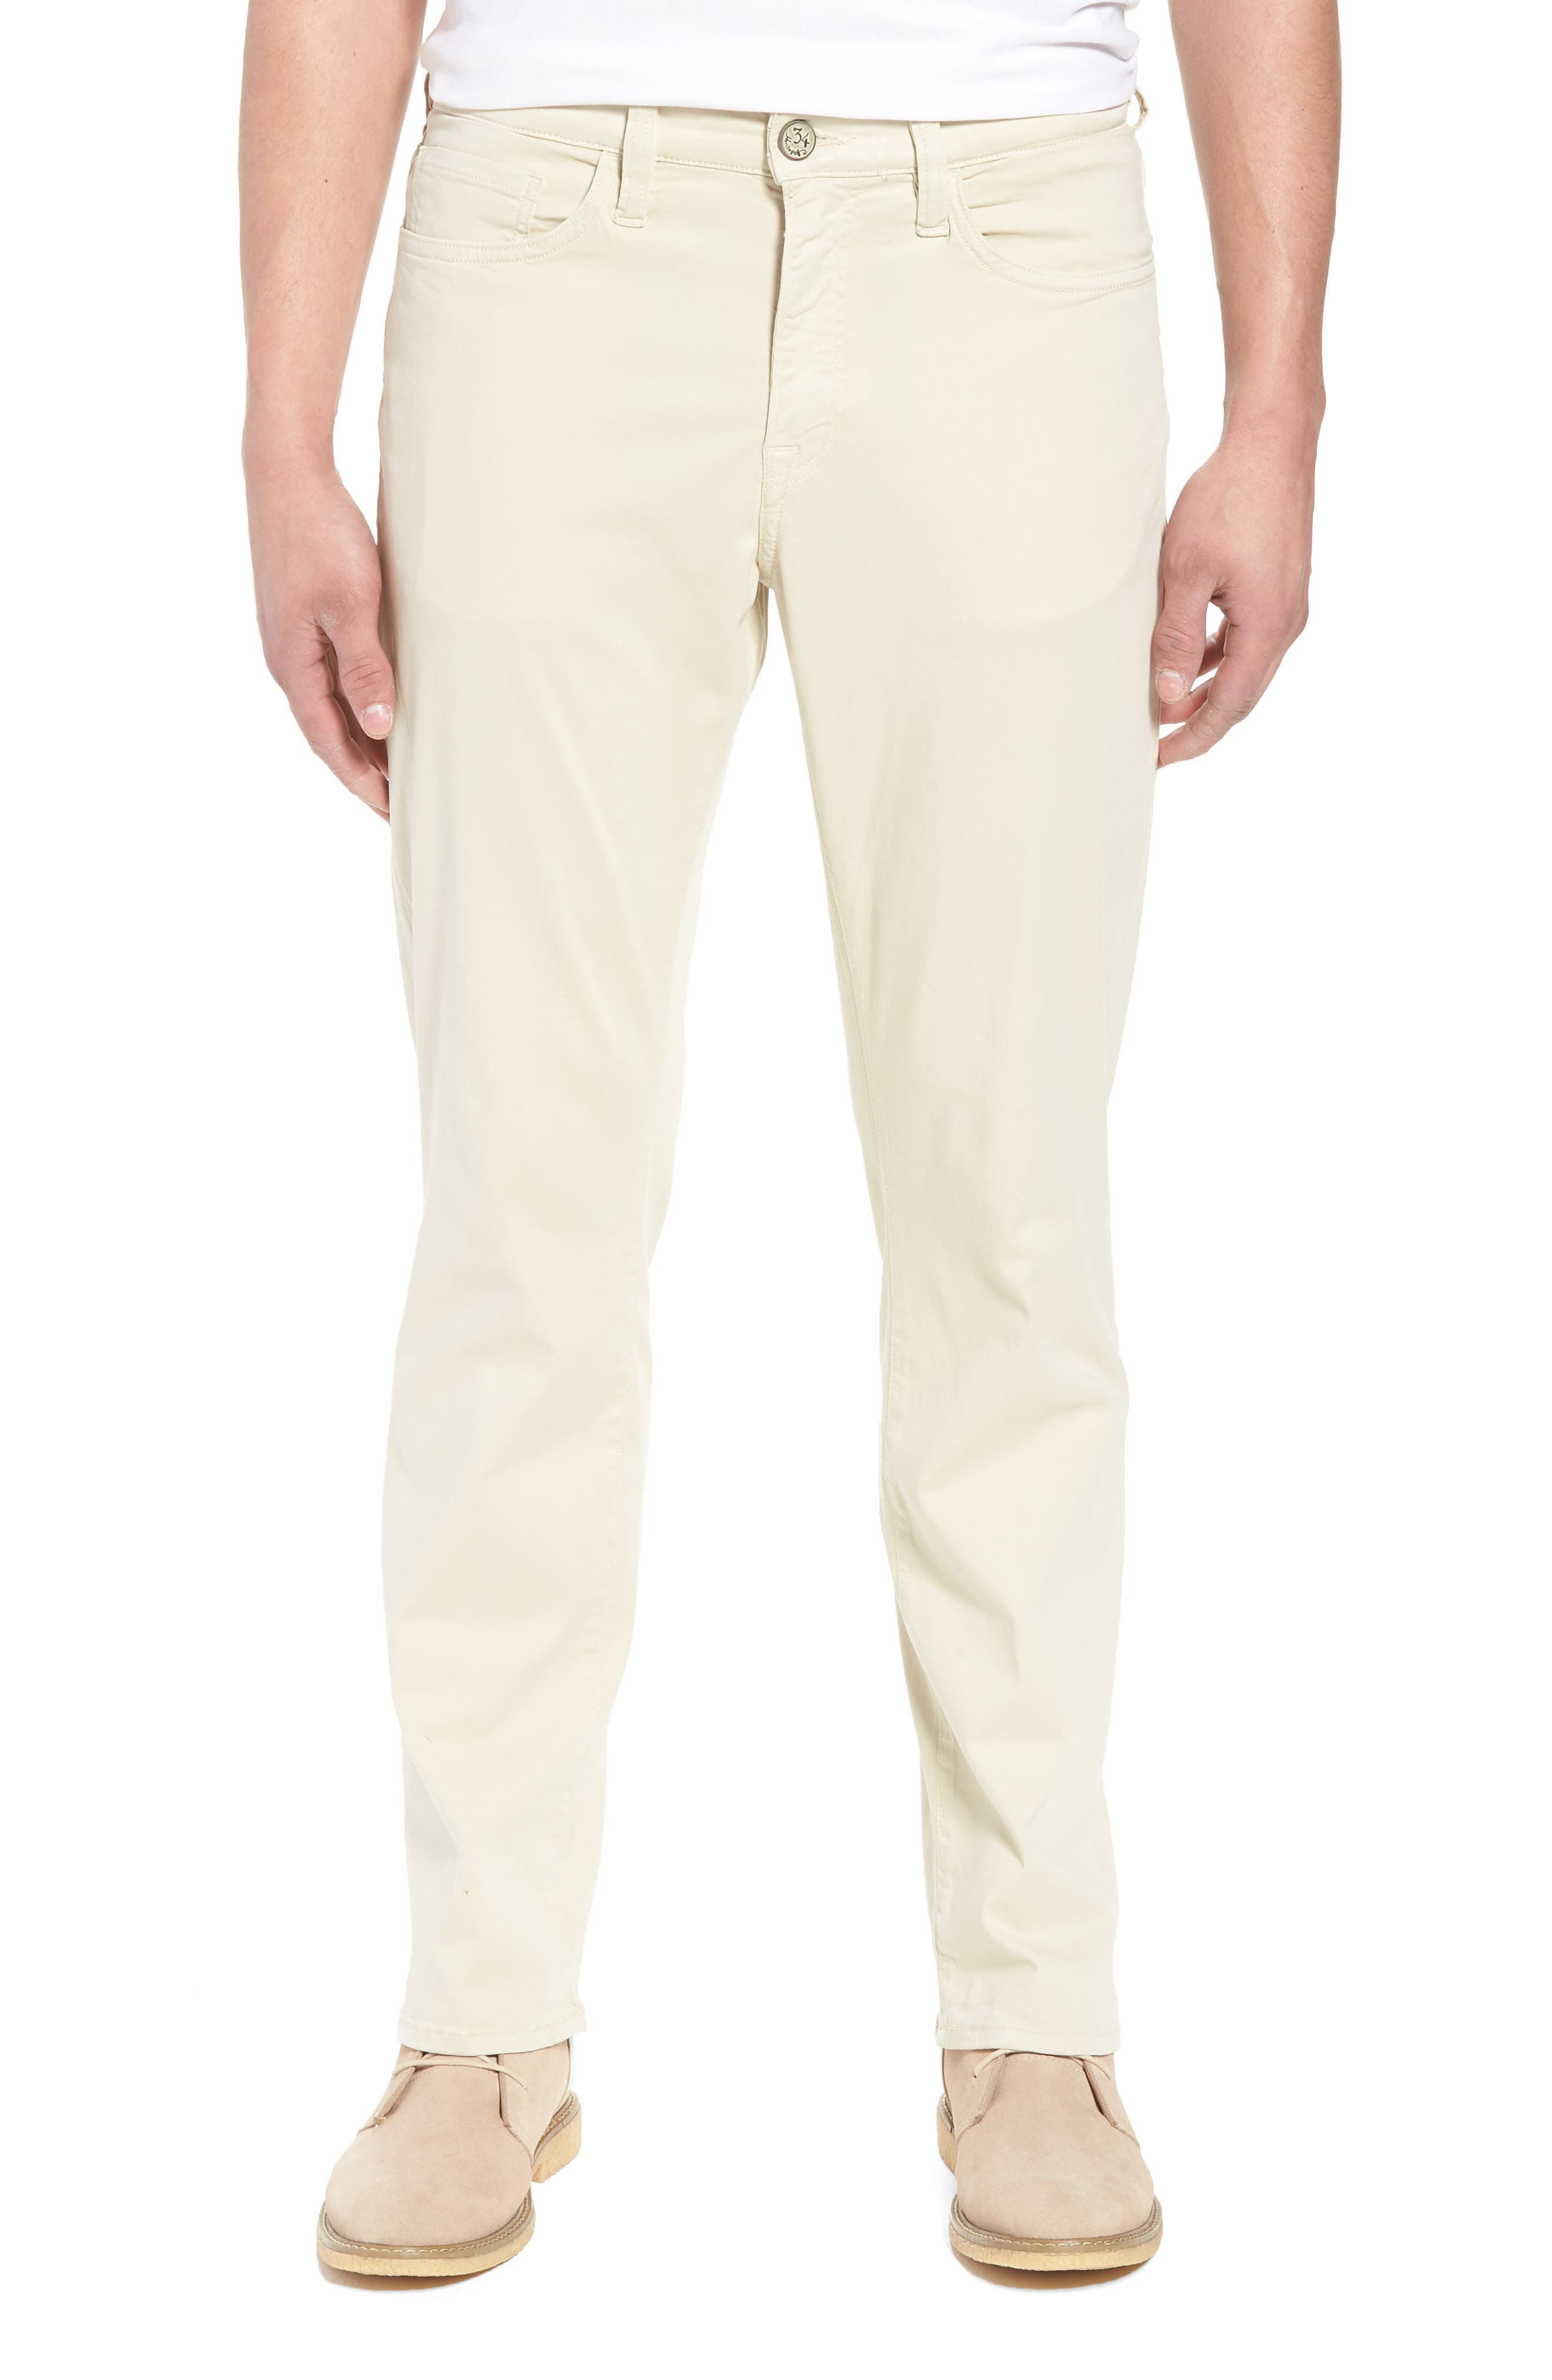 Charisma Relaxed Fit Jeans,                         Main,                         color, Bone Twill